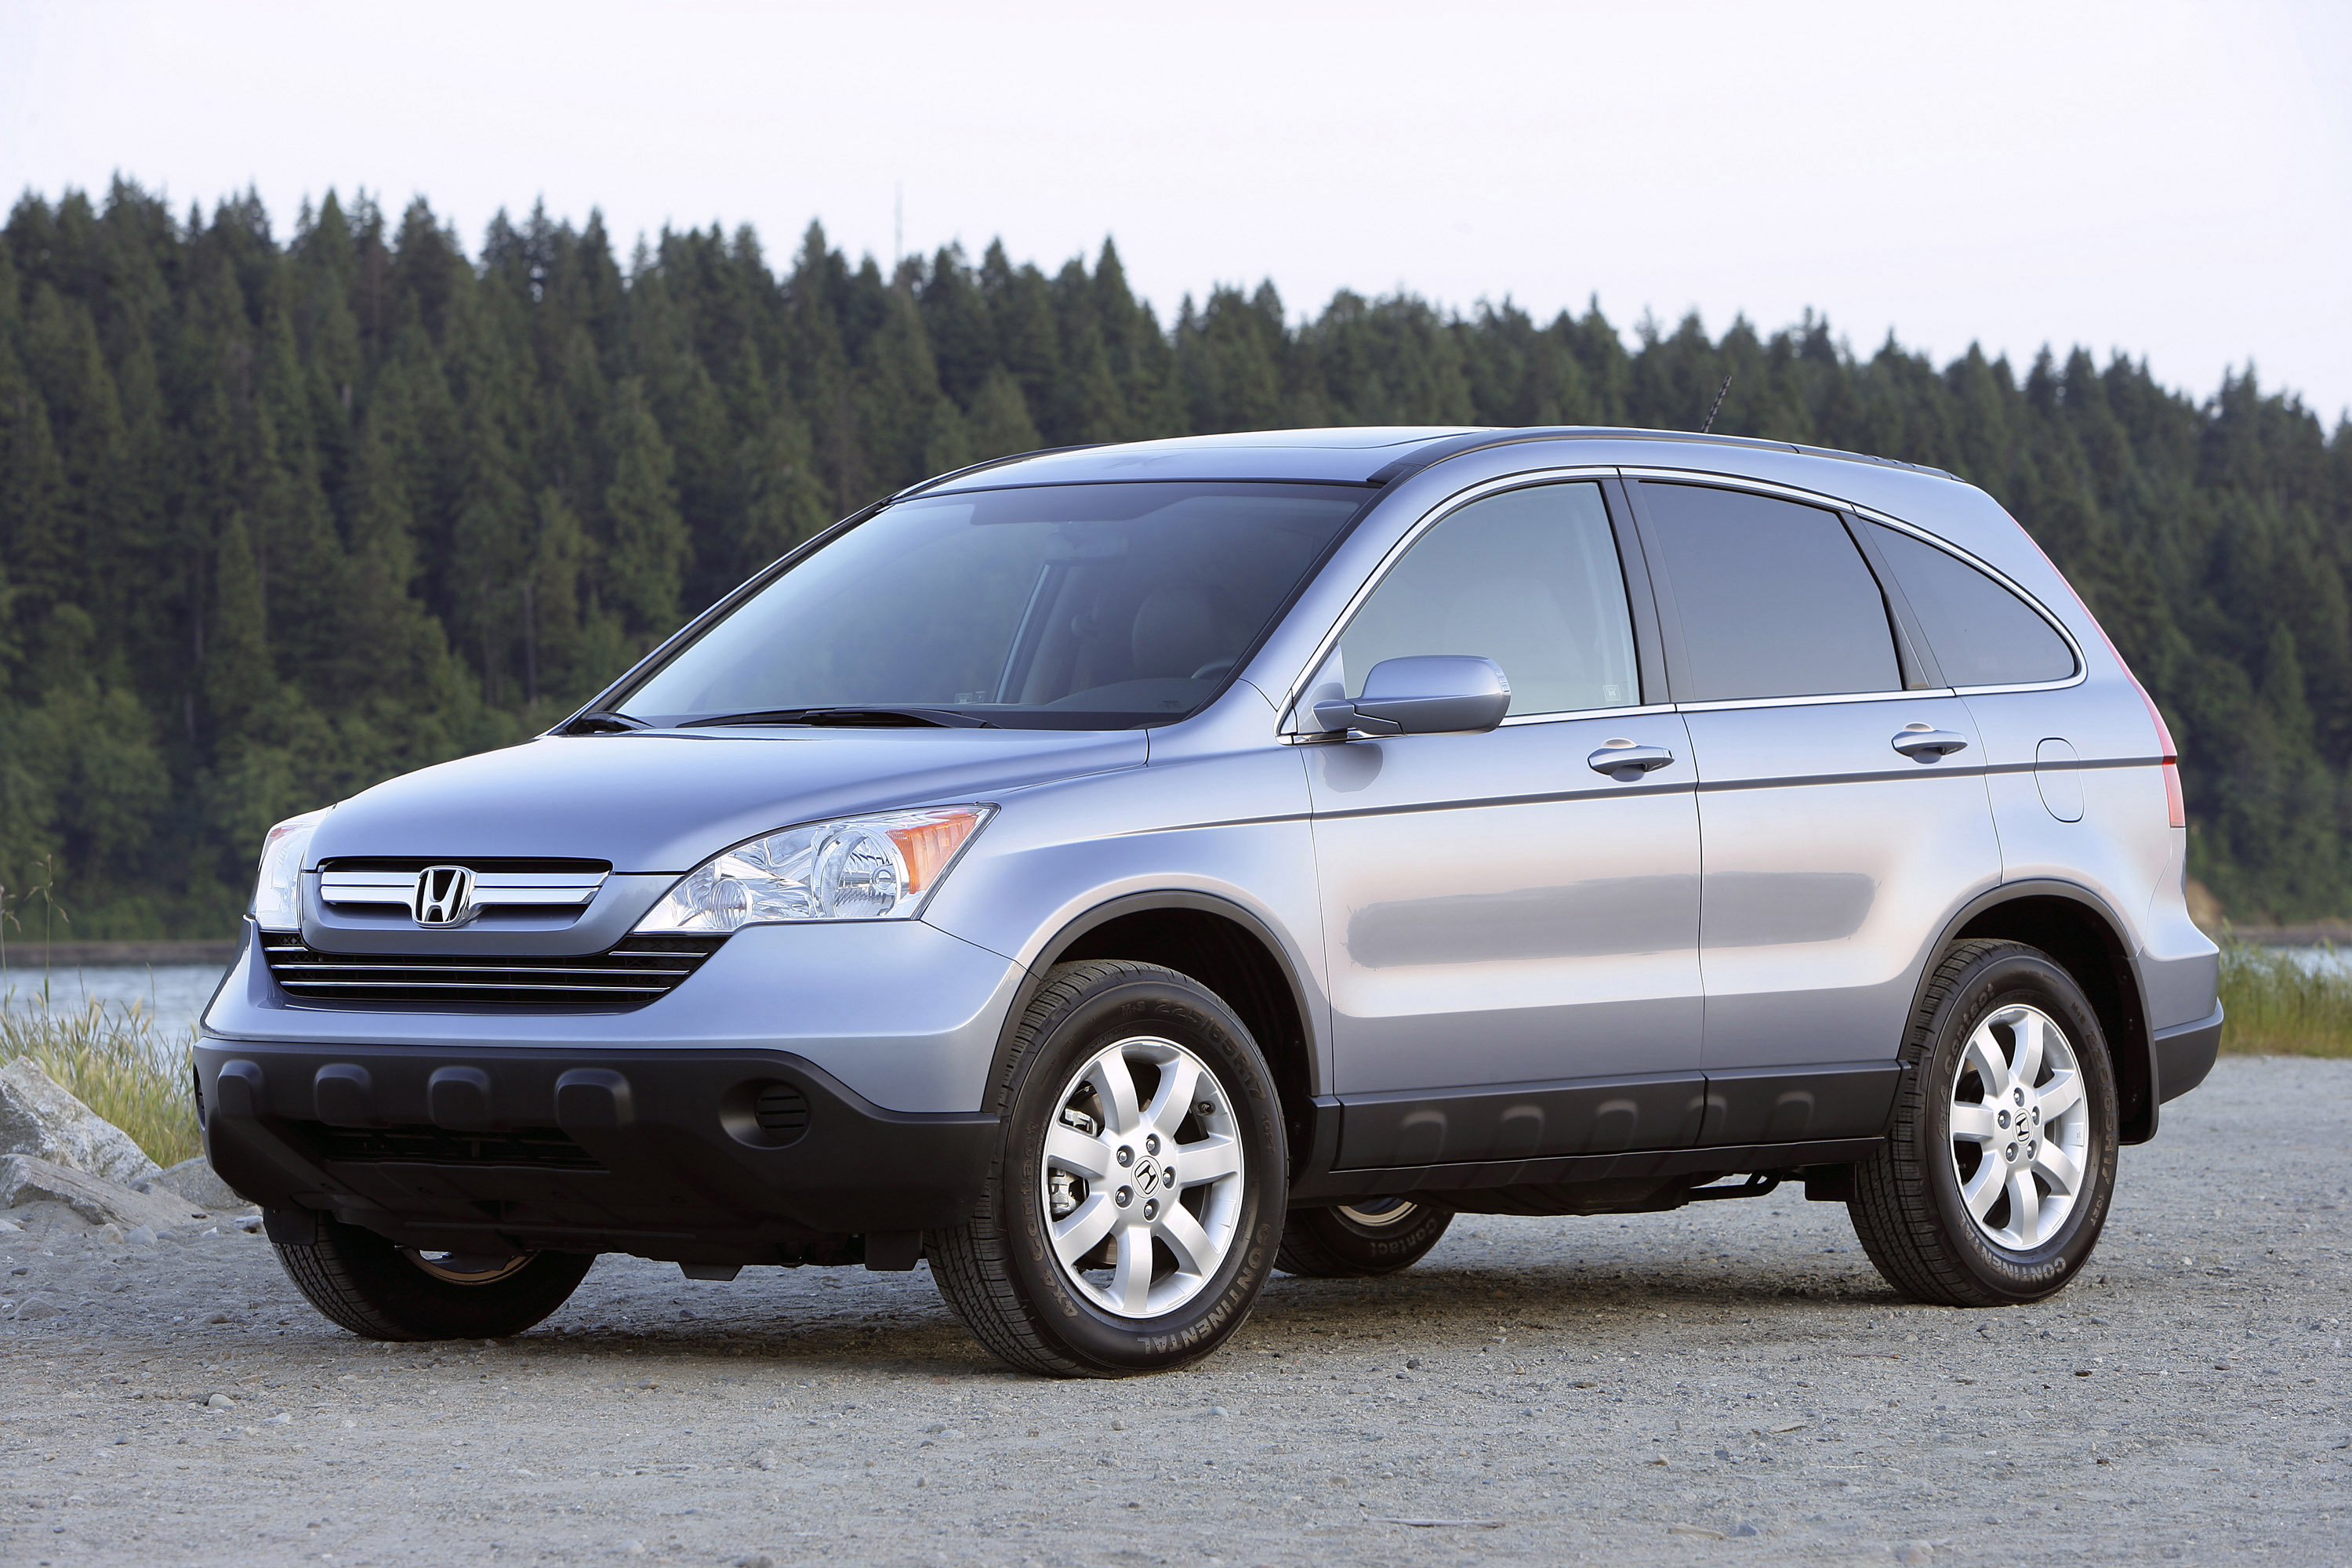 Honda crv baby blue it really is a comfortable reliable vehicle the cars that go vroom pinterest honda crv and honda